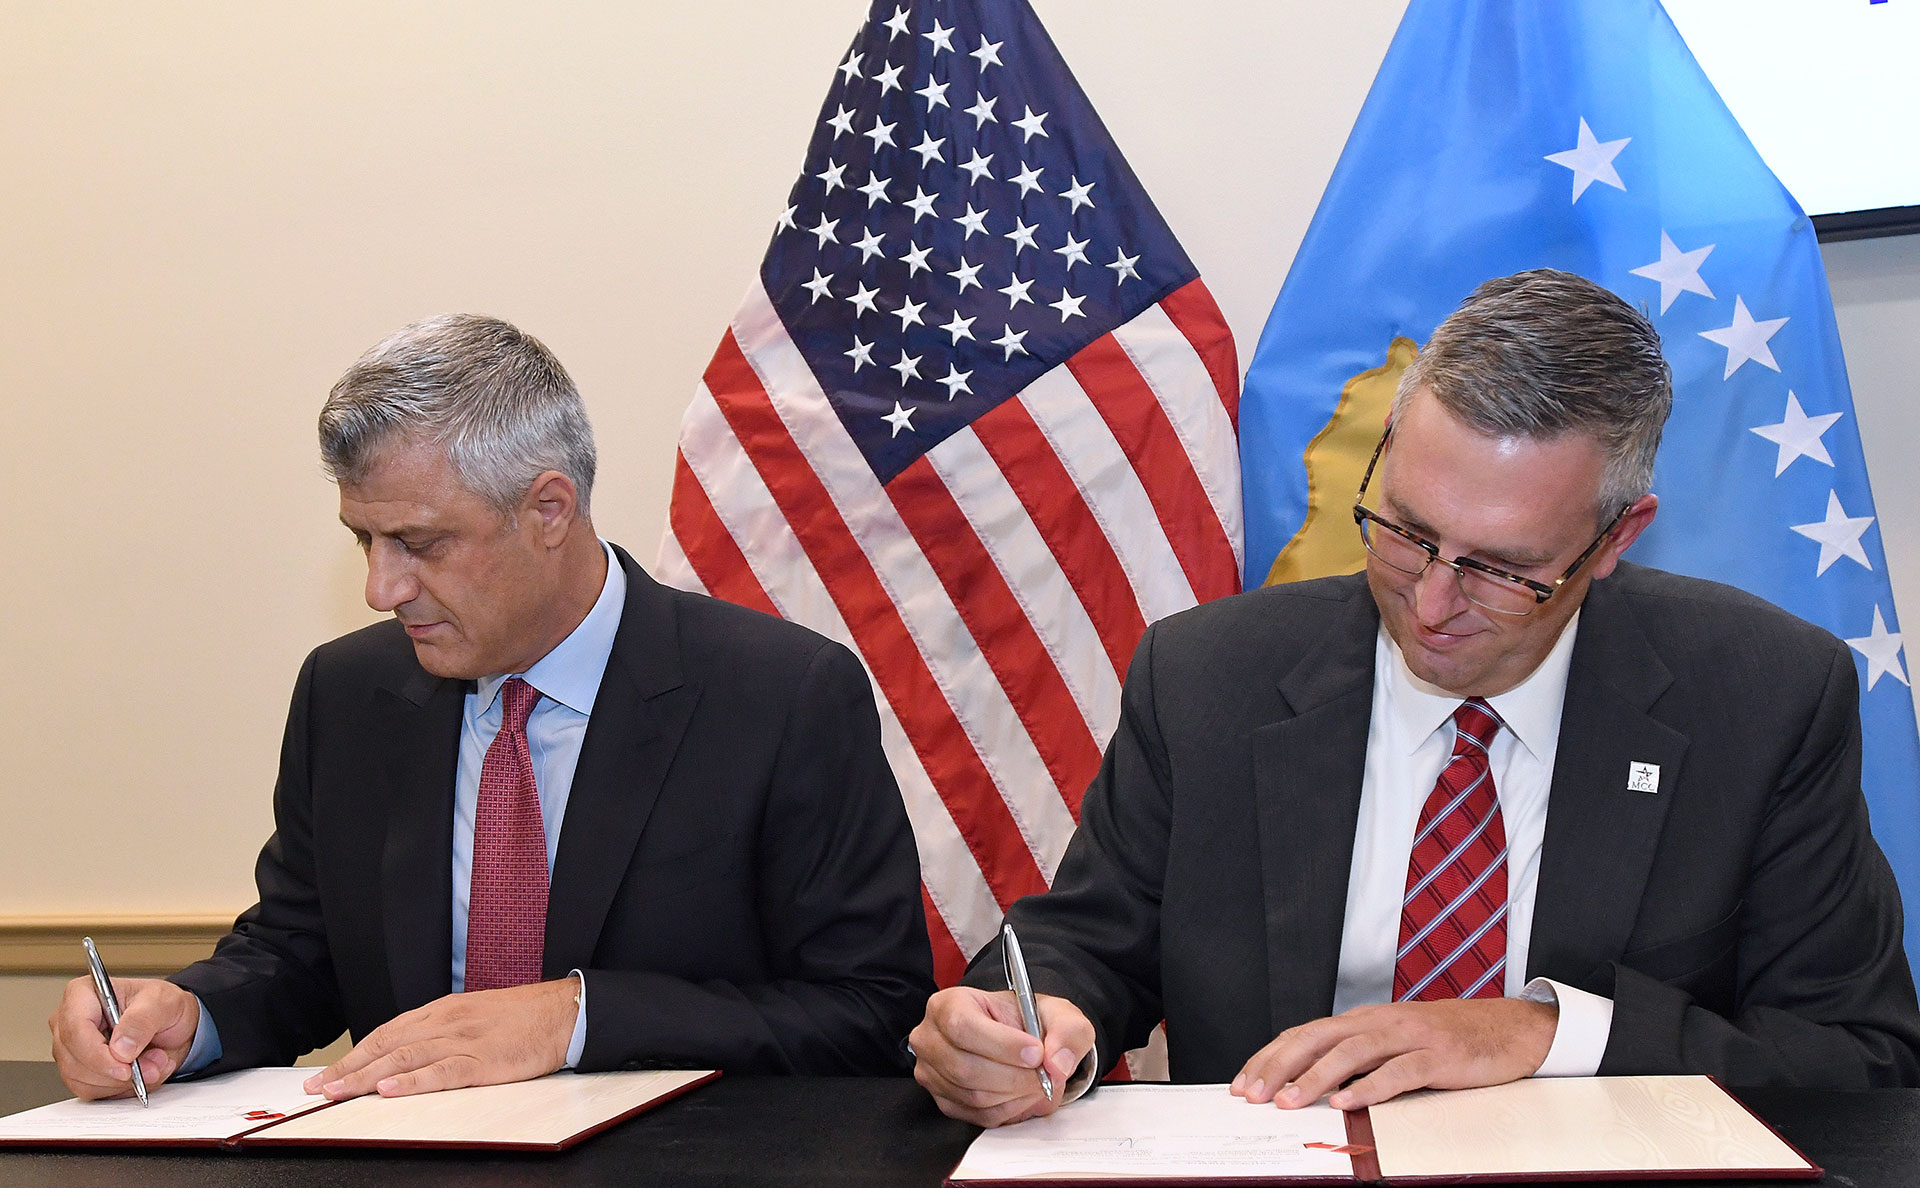 Kosovo President Hashim Thaci, left, and Jonathan Nash, acting CEO of Millennium Challenge Corporation, sign the Kosovo Threshold Program, Tuesday, Sept. 12, 2017 in Washington, D.C.